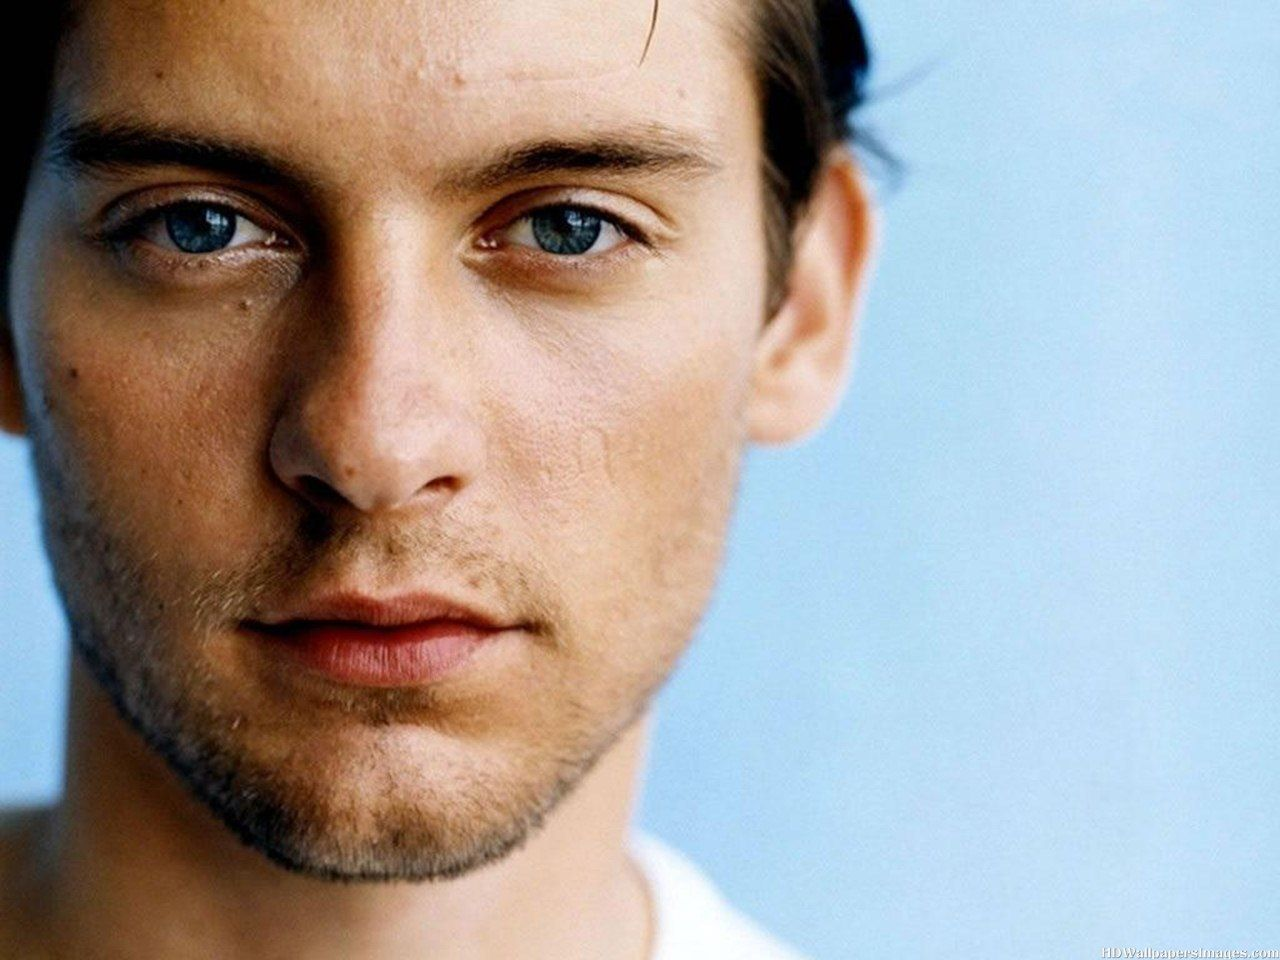 tobey maguire peter parkertobey maguire instagram, tobey maguire spider man, tobey maguire 2016, tobey maguire height, tobey maguire 2017, tobey maguire films, tobey maguire gif, tobey maguire filmleri, tobey maguire vk, tobey maguire imdb, tobey maguire wiki, tobey maguire spider man 3, tobey maguire jennifer meyer, tobey maguire movies, tobey maguire wikipedia, tobey maguire smile, tobey maguire peter parker, tobey maguire family, tobey maguire dance, tobey maguire wife